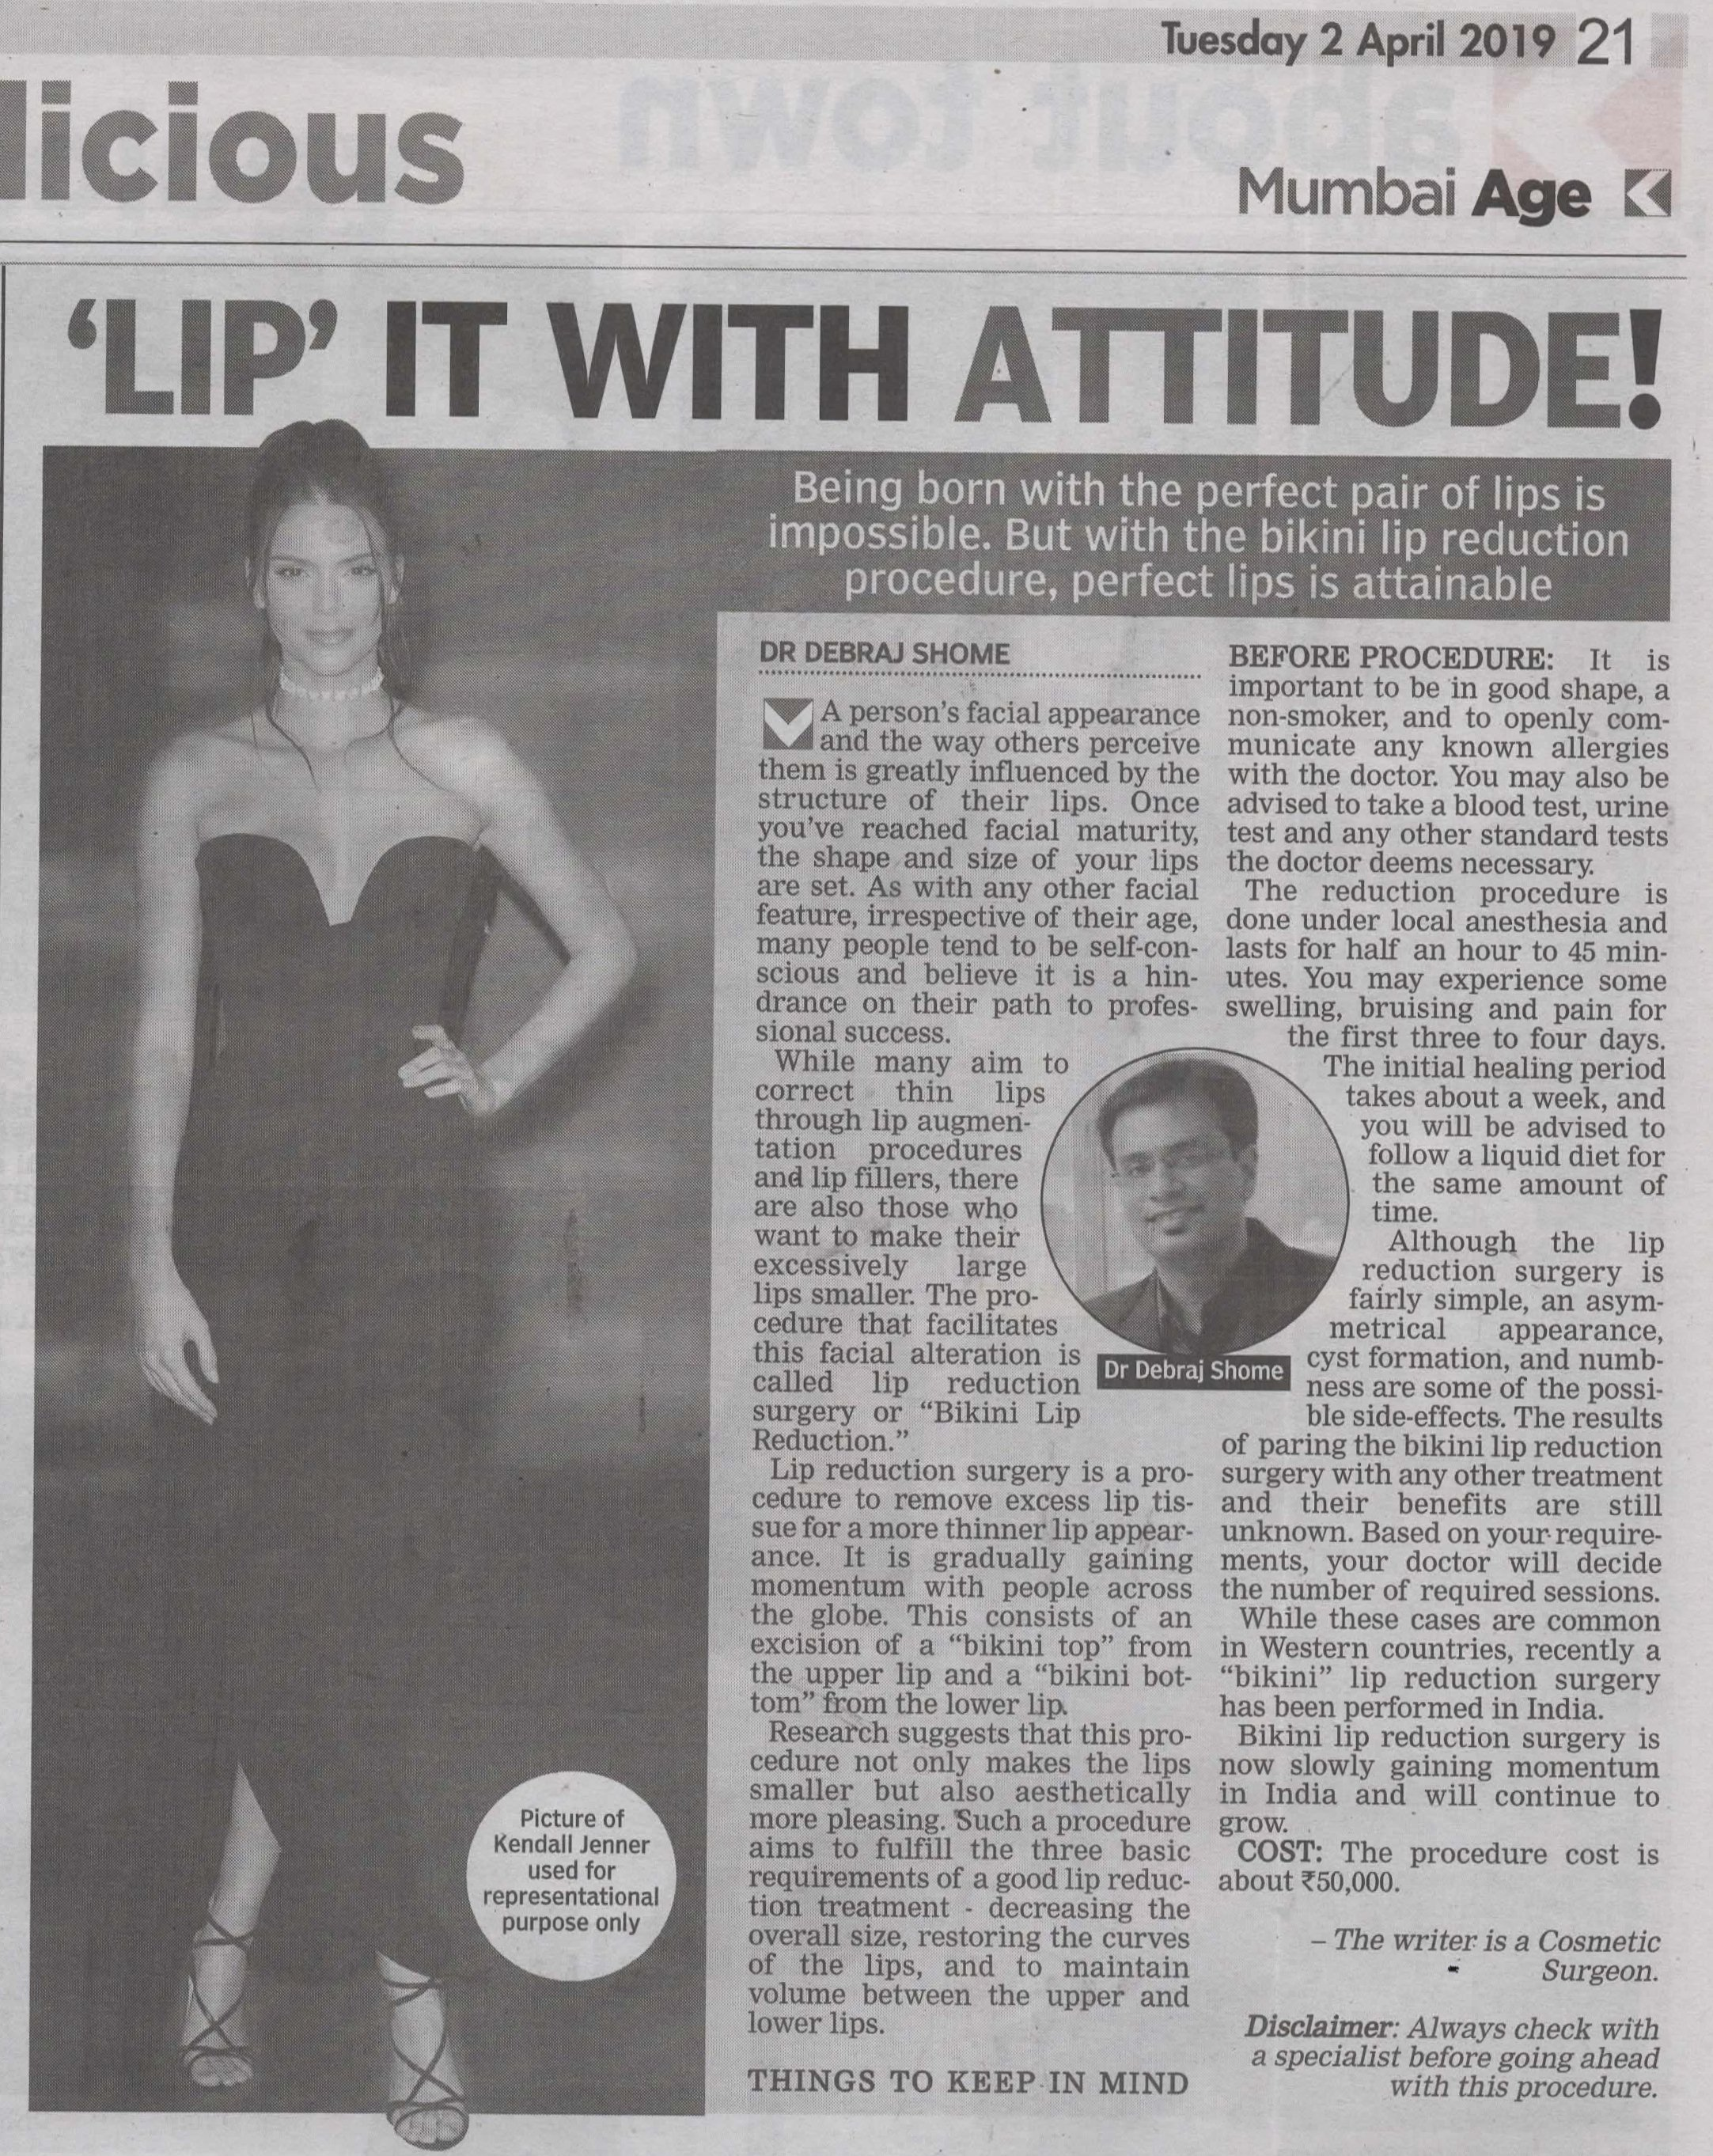 Bikni Lip - Asian Age & Deccan Chronicle